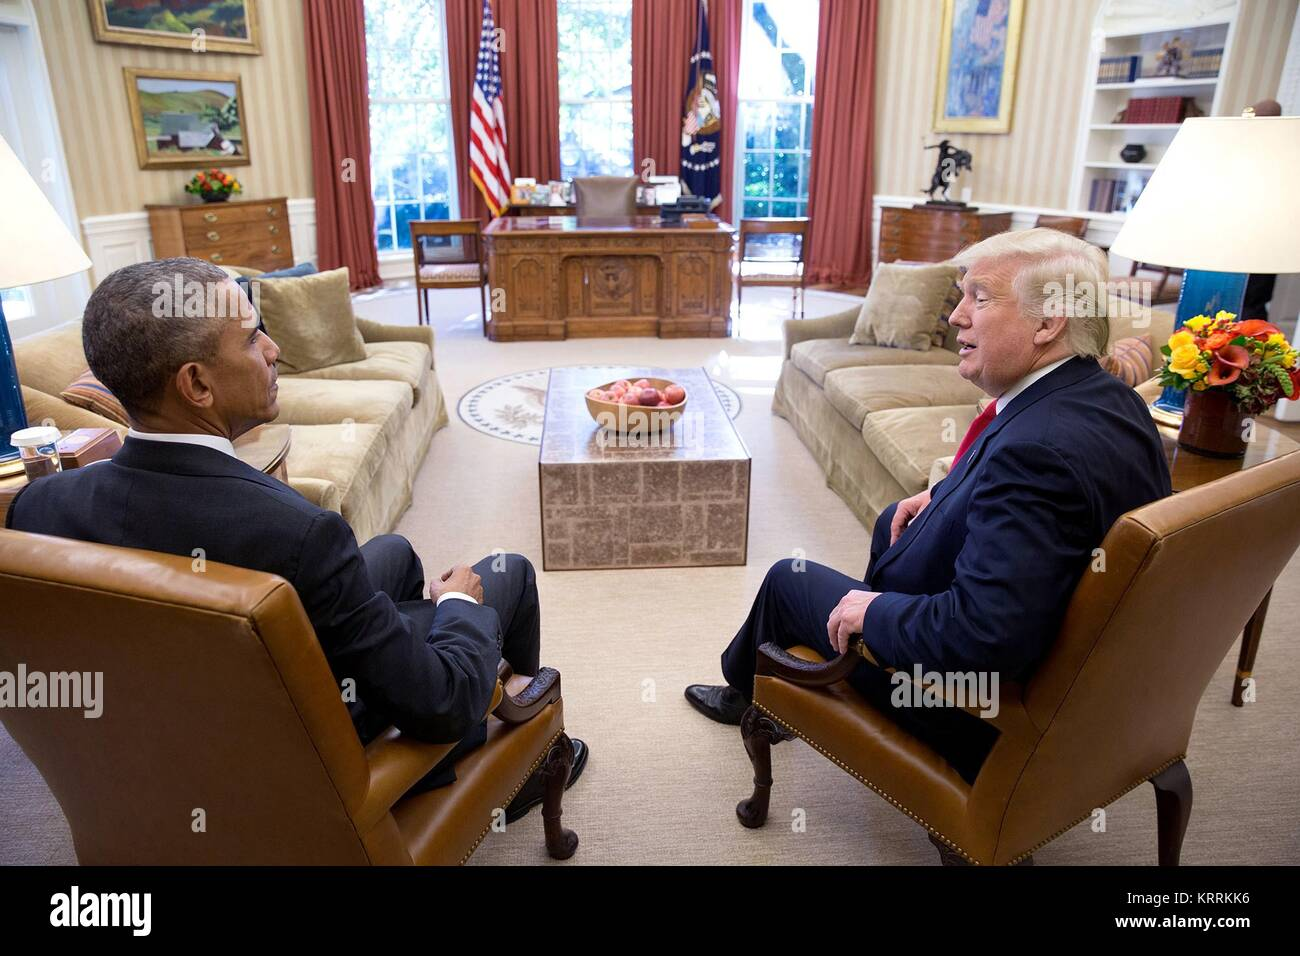 U.S. President Barack Obama meets with U.S. President-elect Donald Trump in the White House Oval Office November - Stock Image